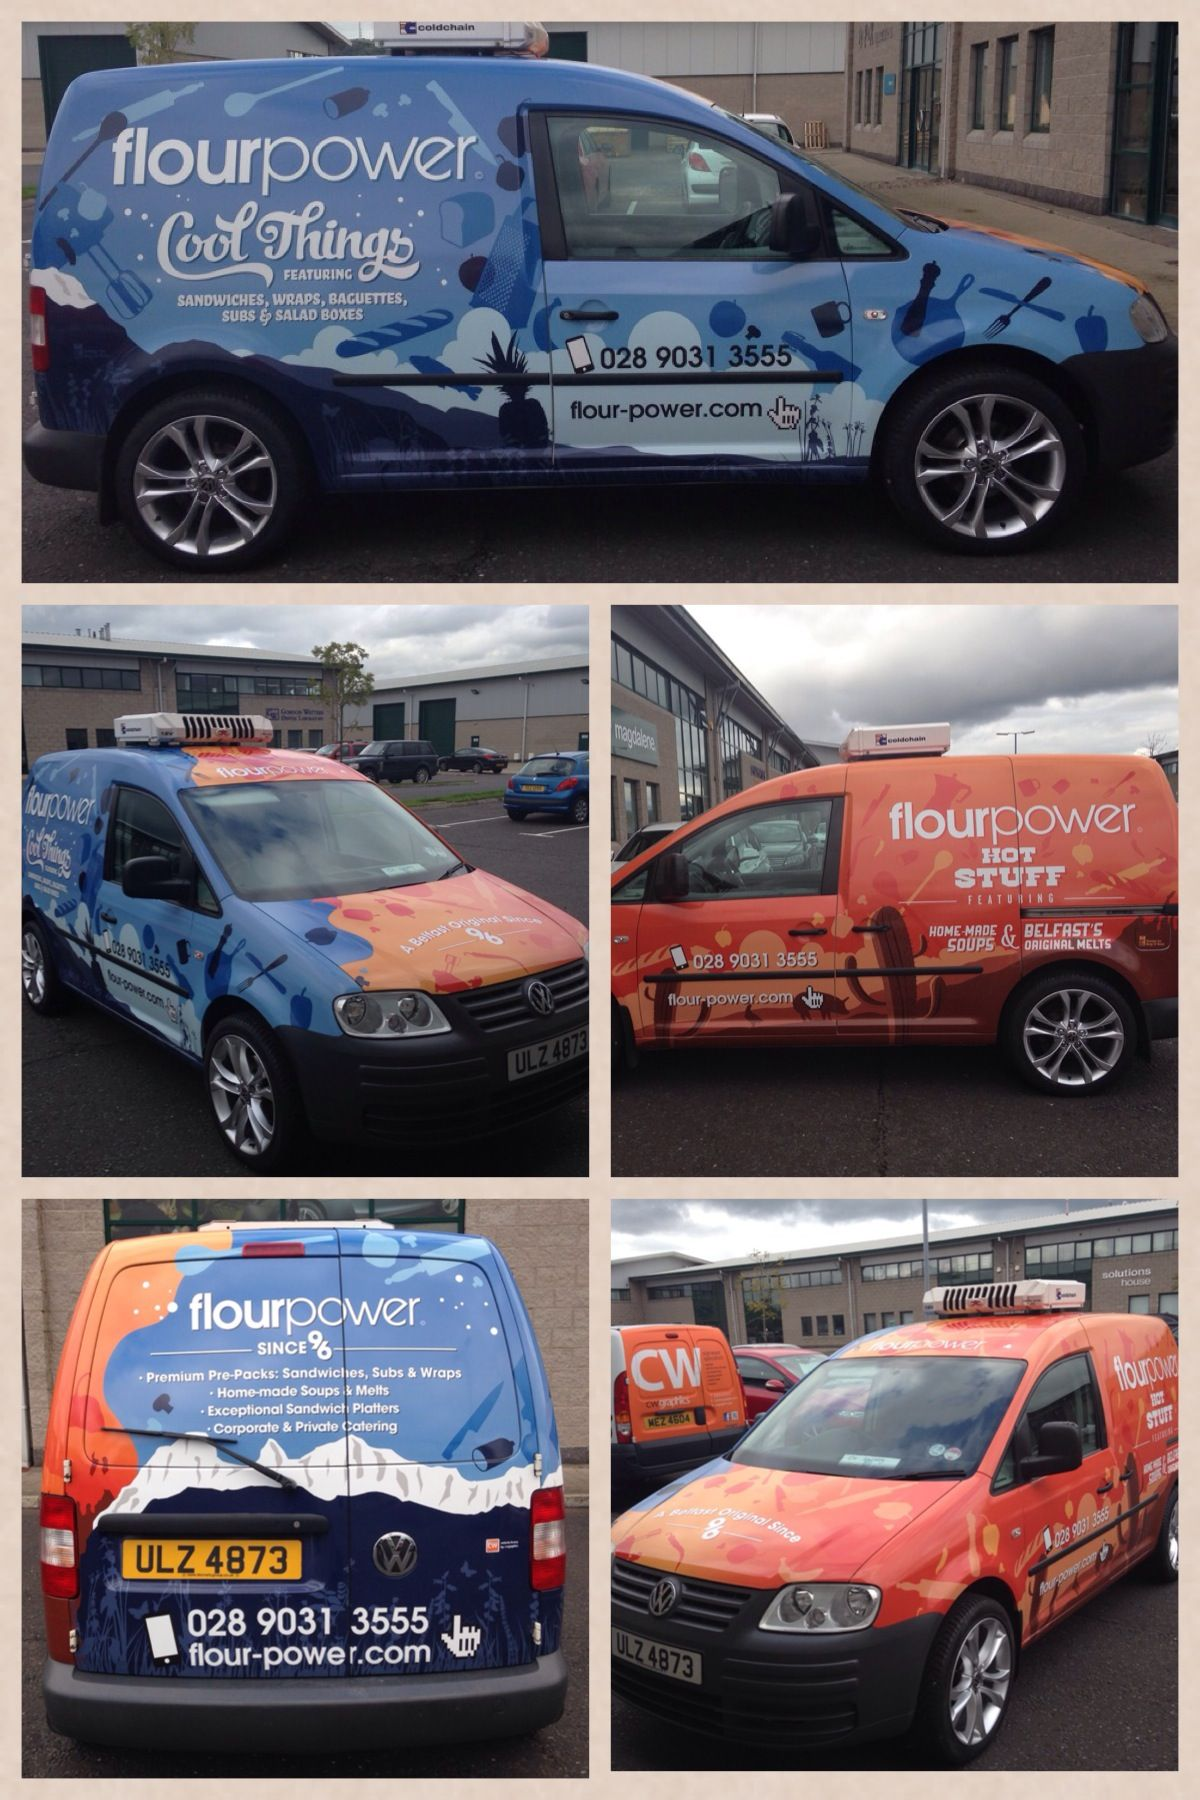 Check Out The Flourpower Complete Vehicle Wrap The Vehicle Wrapping Film Arlon 6000 Xrp Was Used To Wrap The Van Car Wrap Lifted Ford Trucks Lifted Cars [ 1800 x 1200 Pixel ]